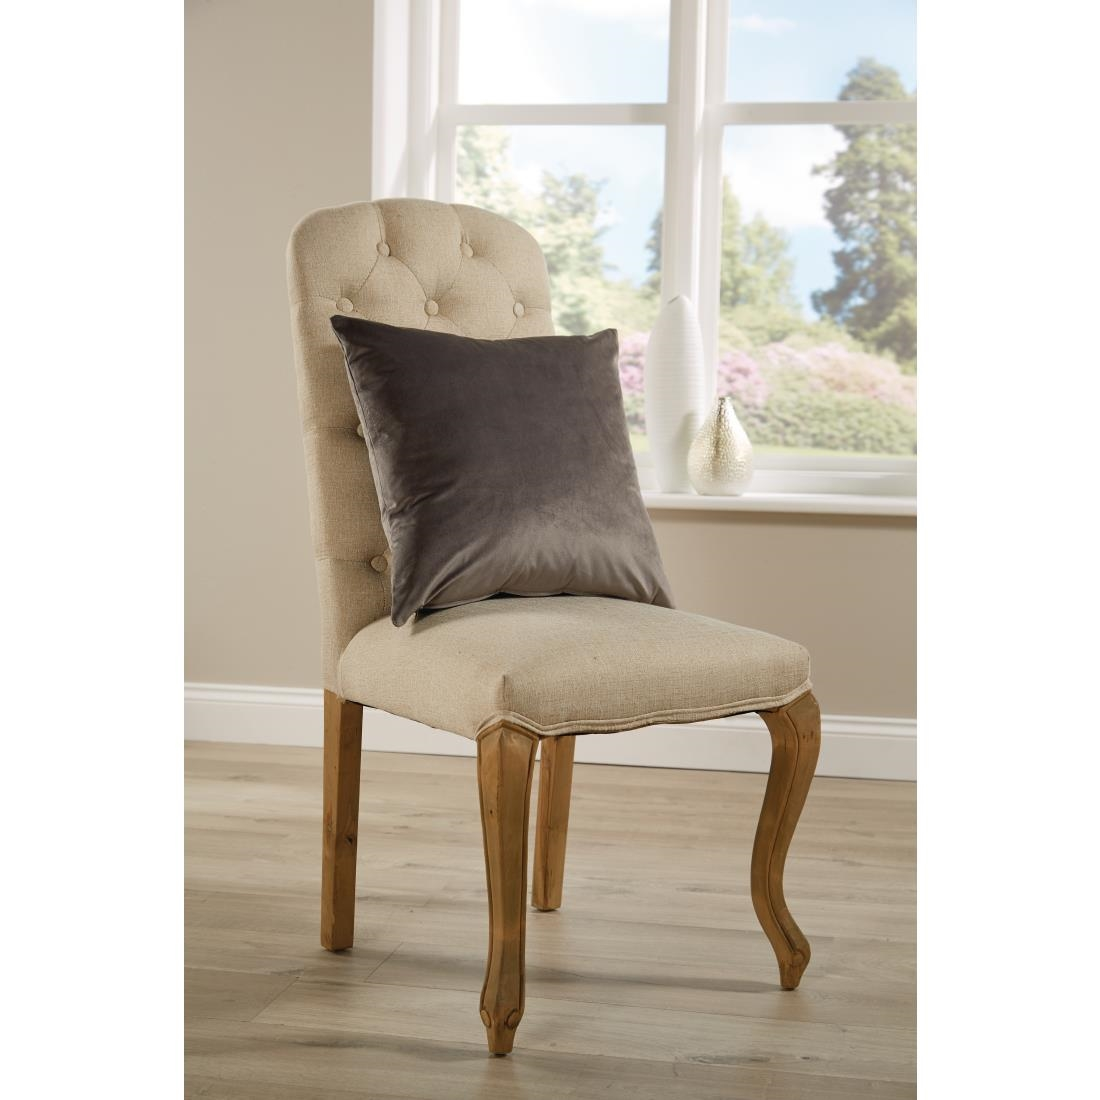 Image of Mitre Comfort DArcy Unpiped Cushion Steel